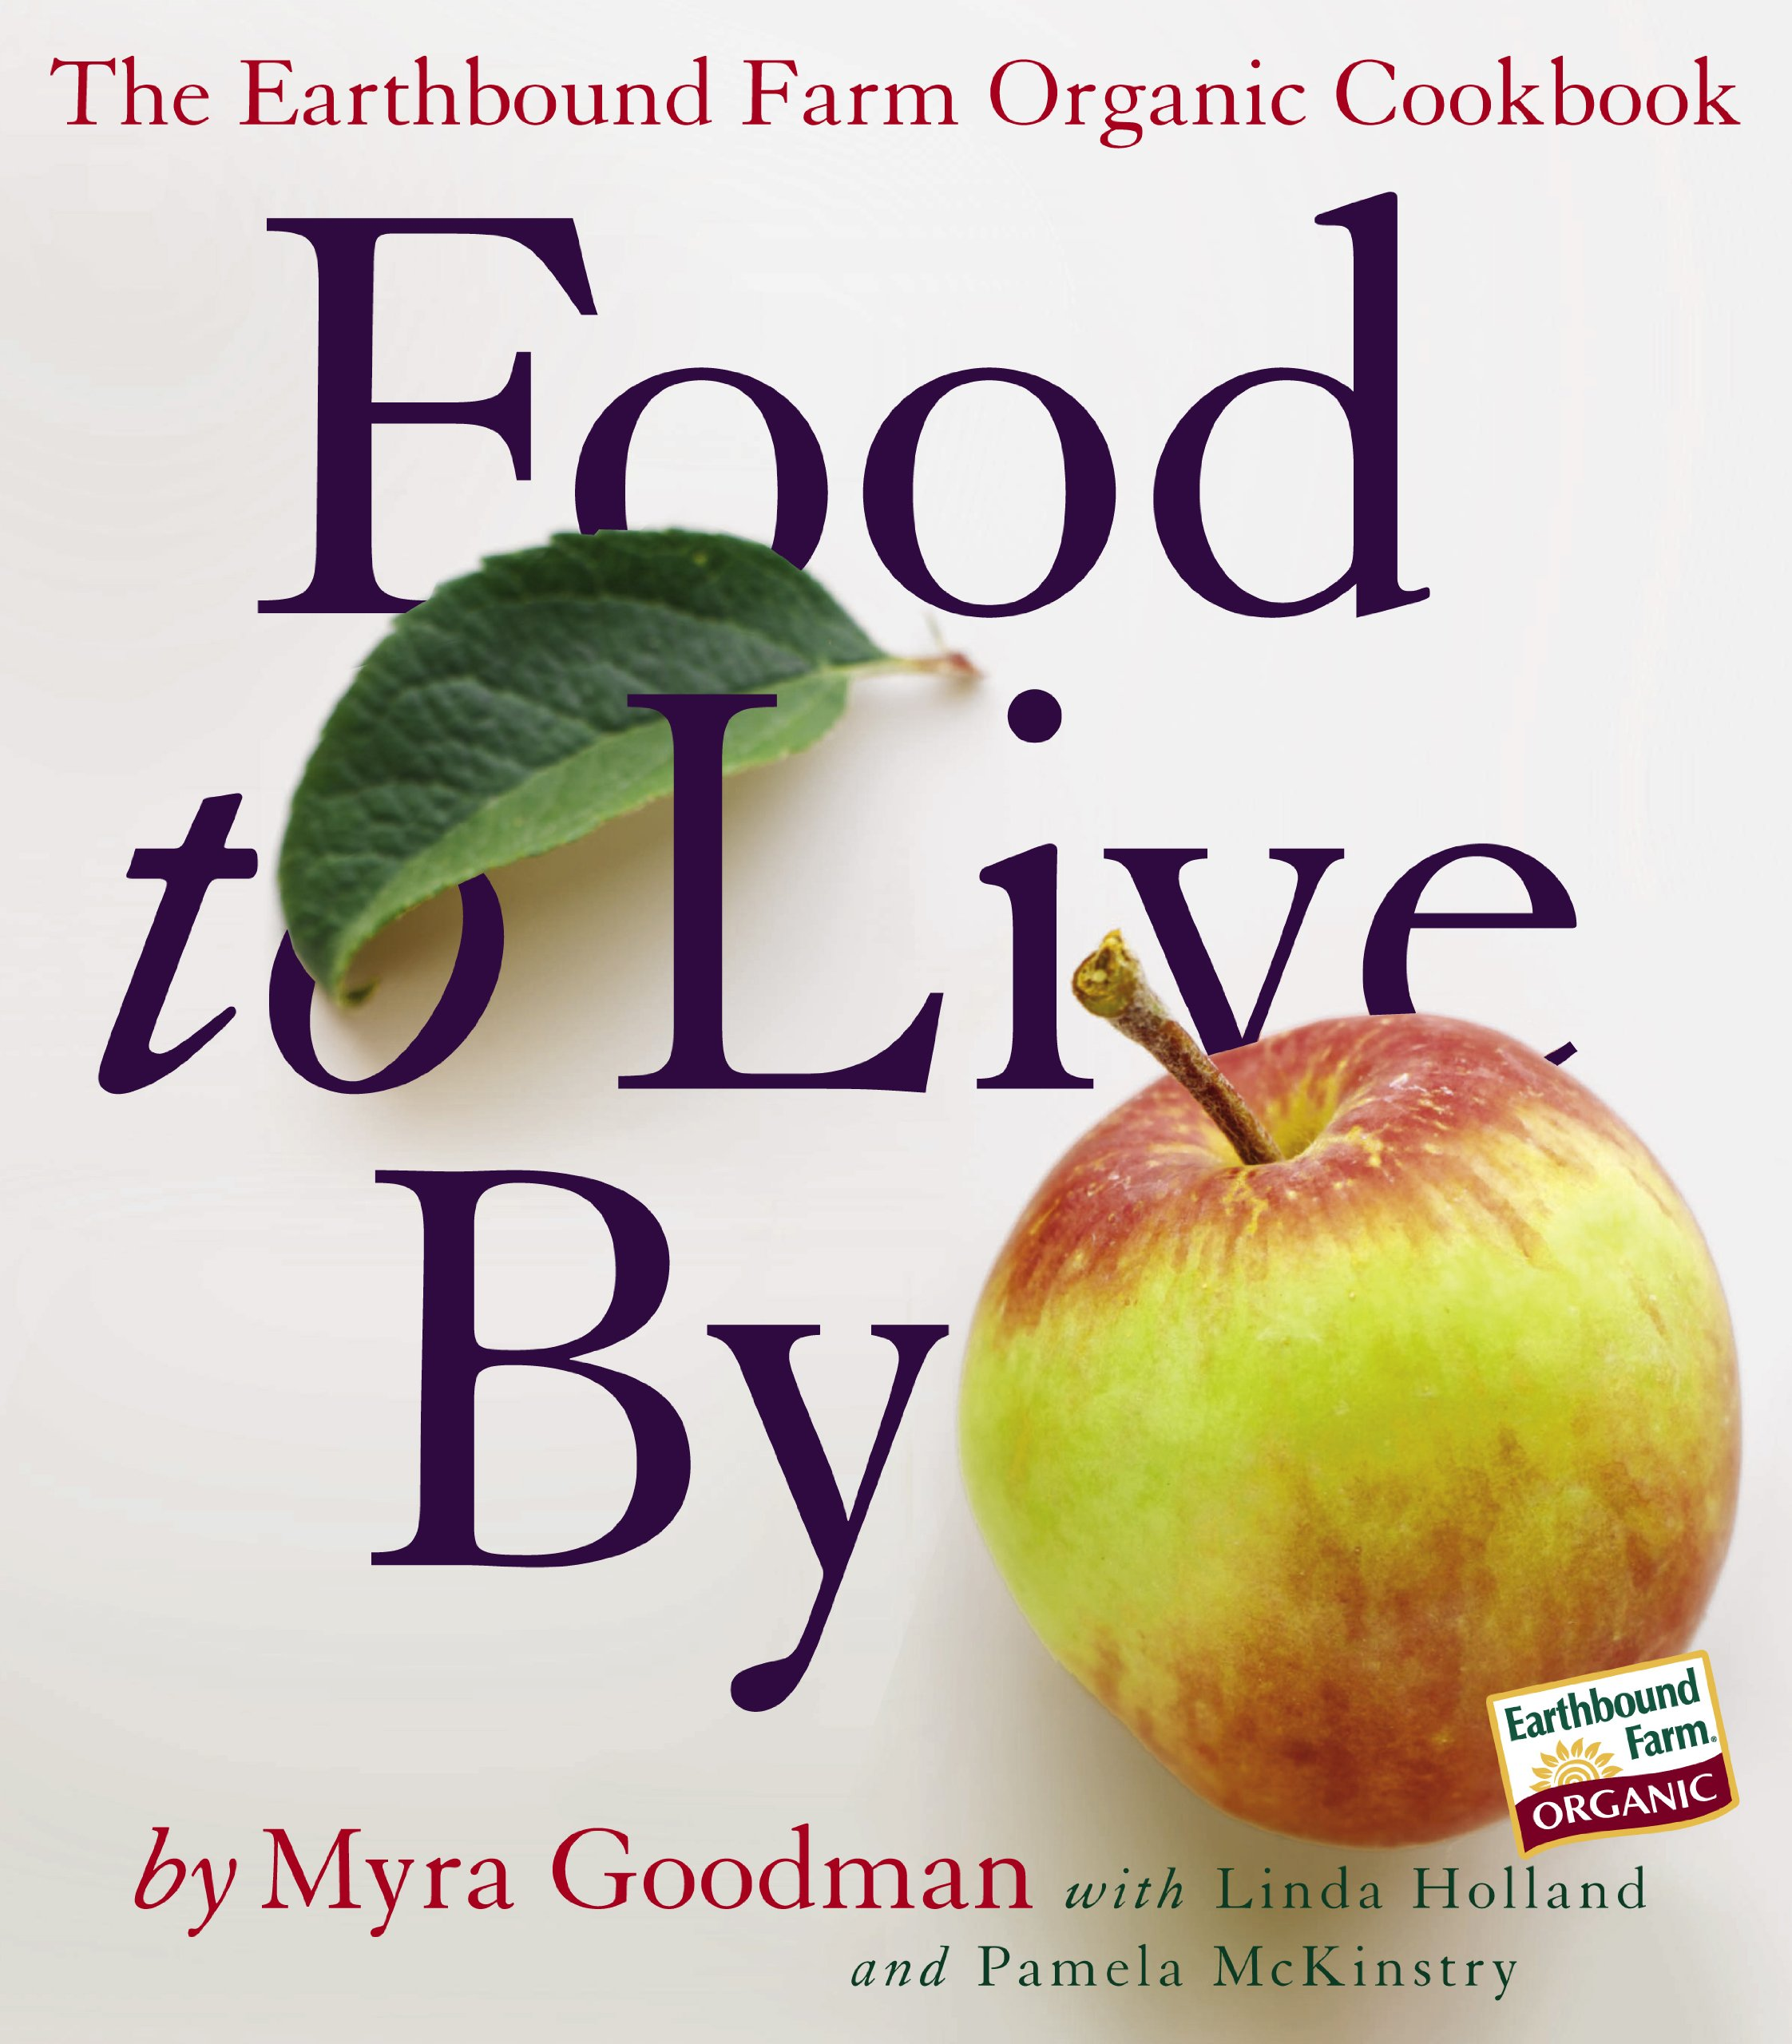 Food to live by the earthbound farm organic cookbook myra food to live by the earthbound farm organic cookbook myra goodman linda holland pamela mckinstry 0019628138996 amazon books forumfinder Choice Image